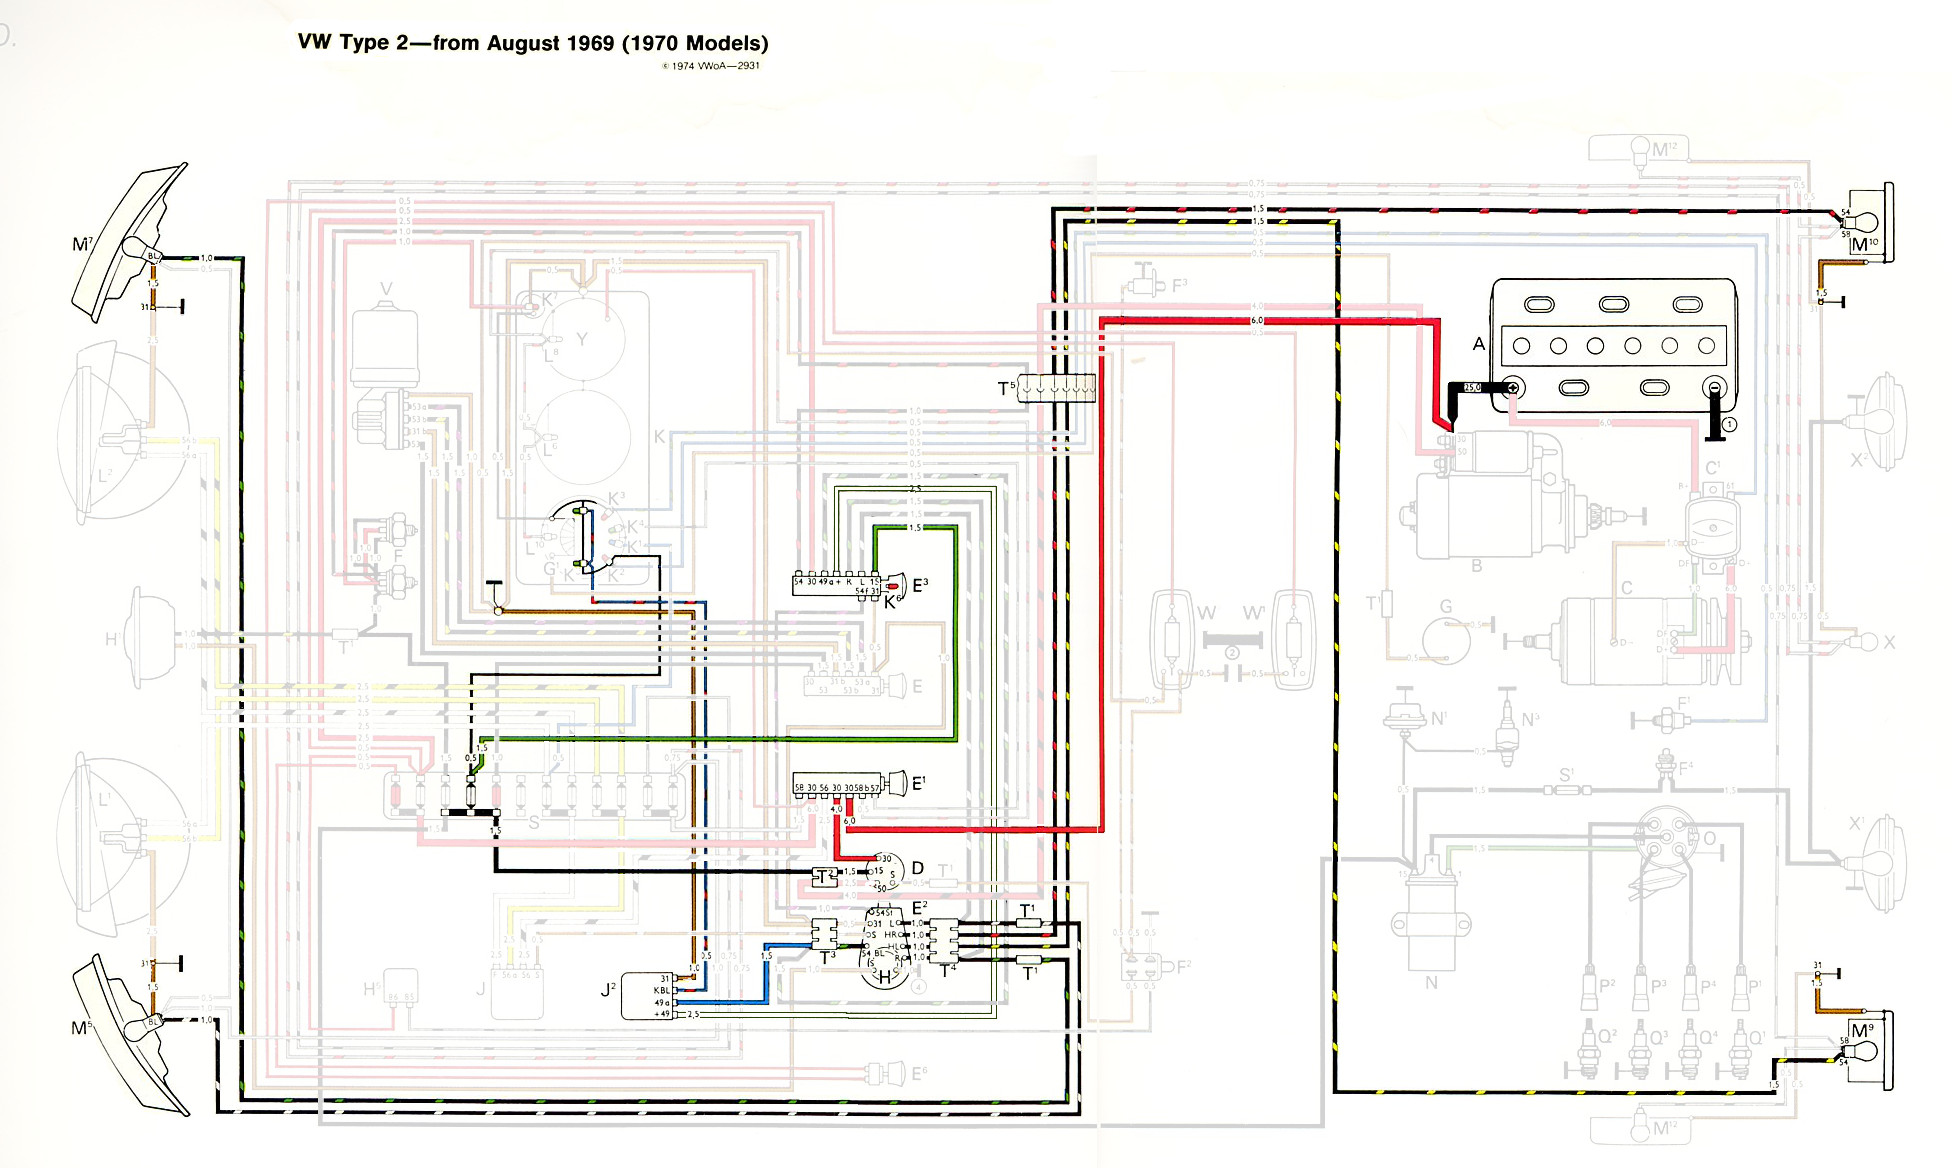 Cj5 Turn Signal Wiring Diagram Library Cj Jeep 1974 Images Gallery Thesamba Com Type 2 Diagrams